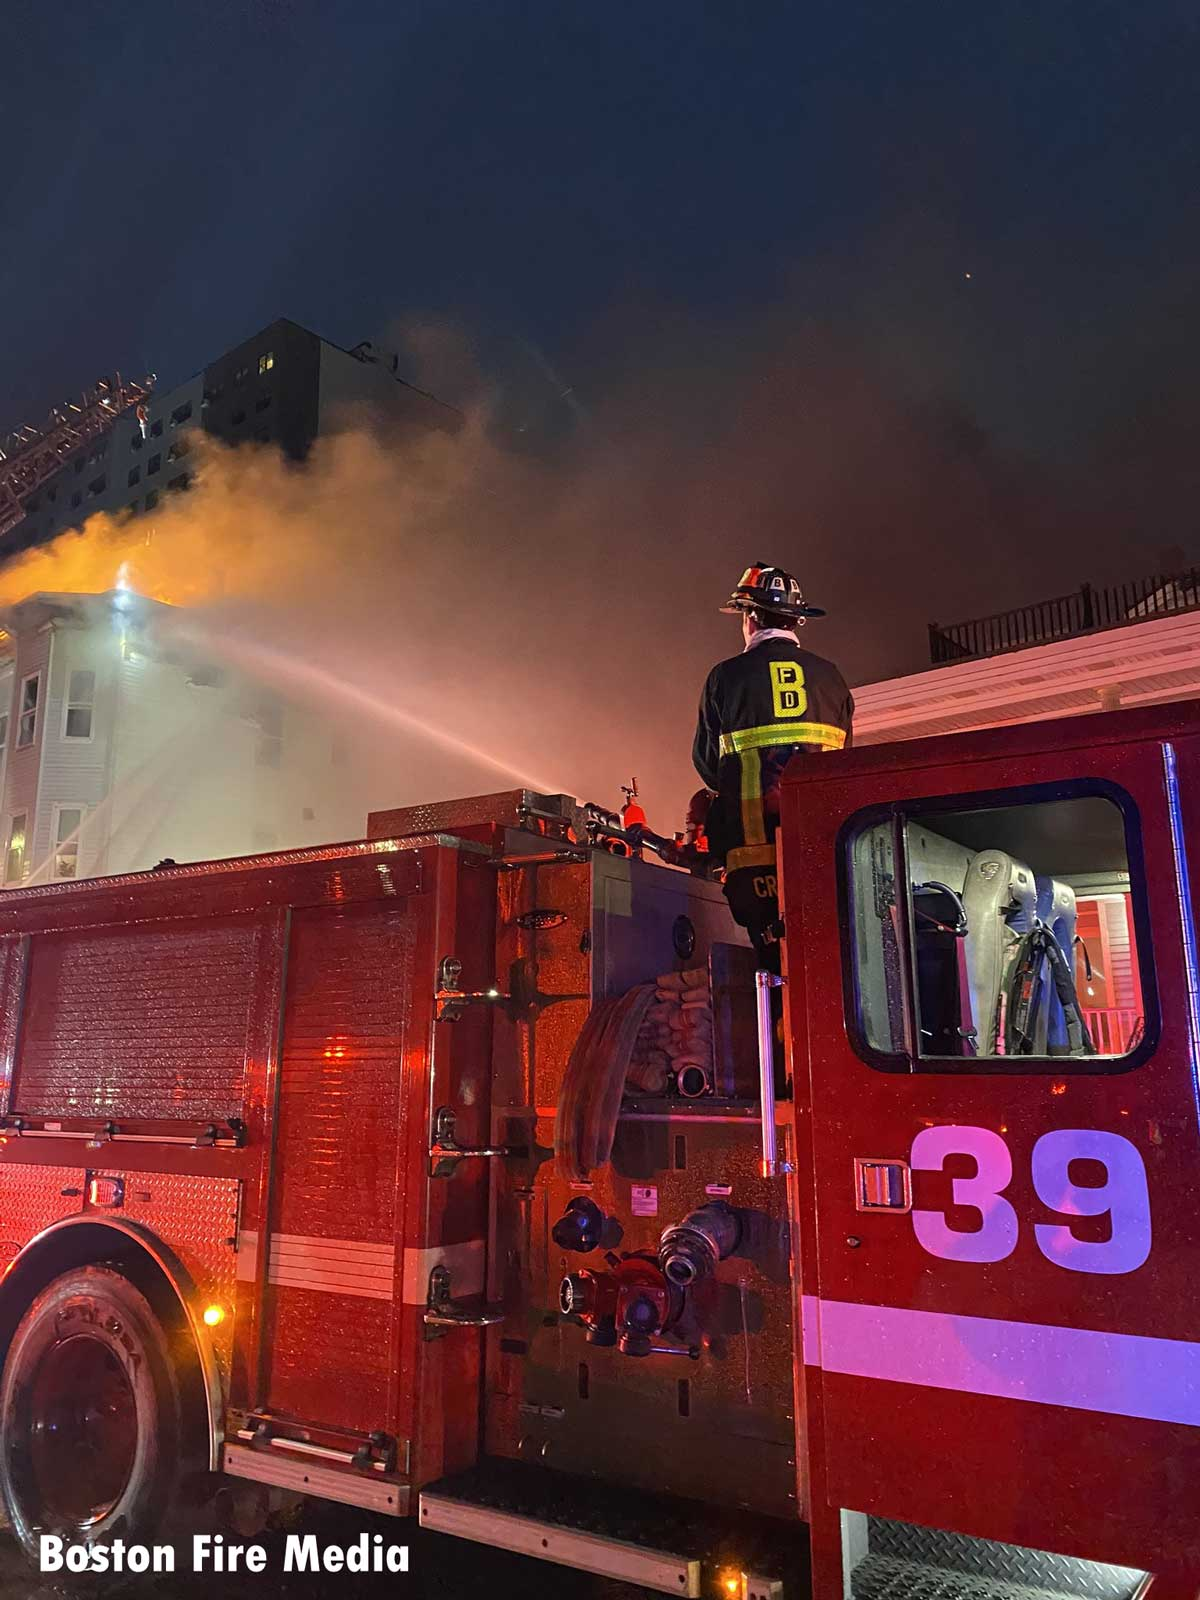 Boston fire apparatus with firefighter using master stream